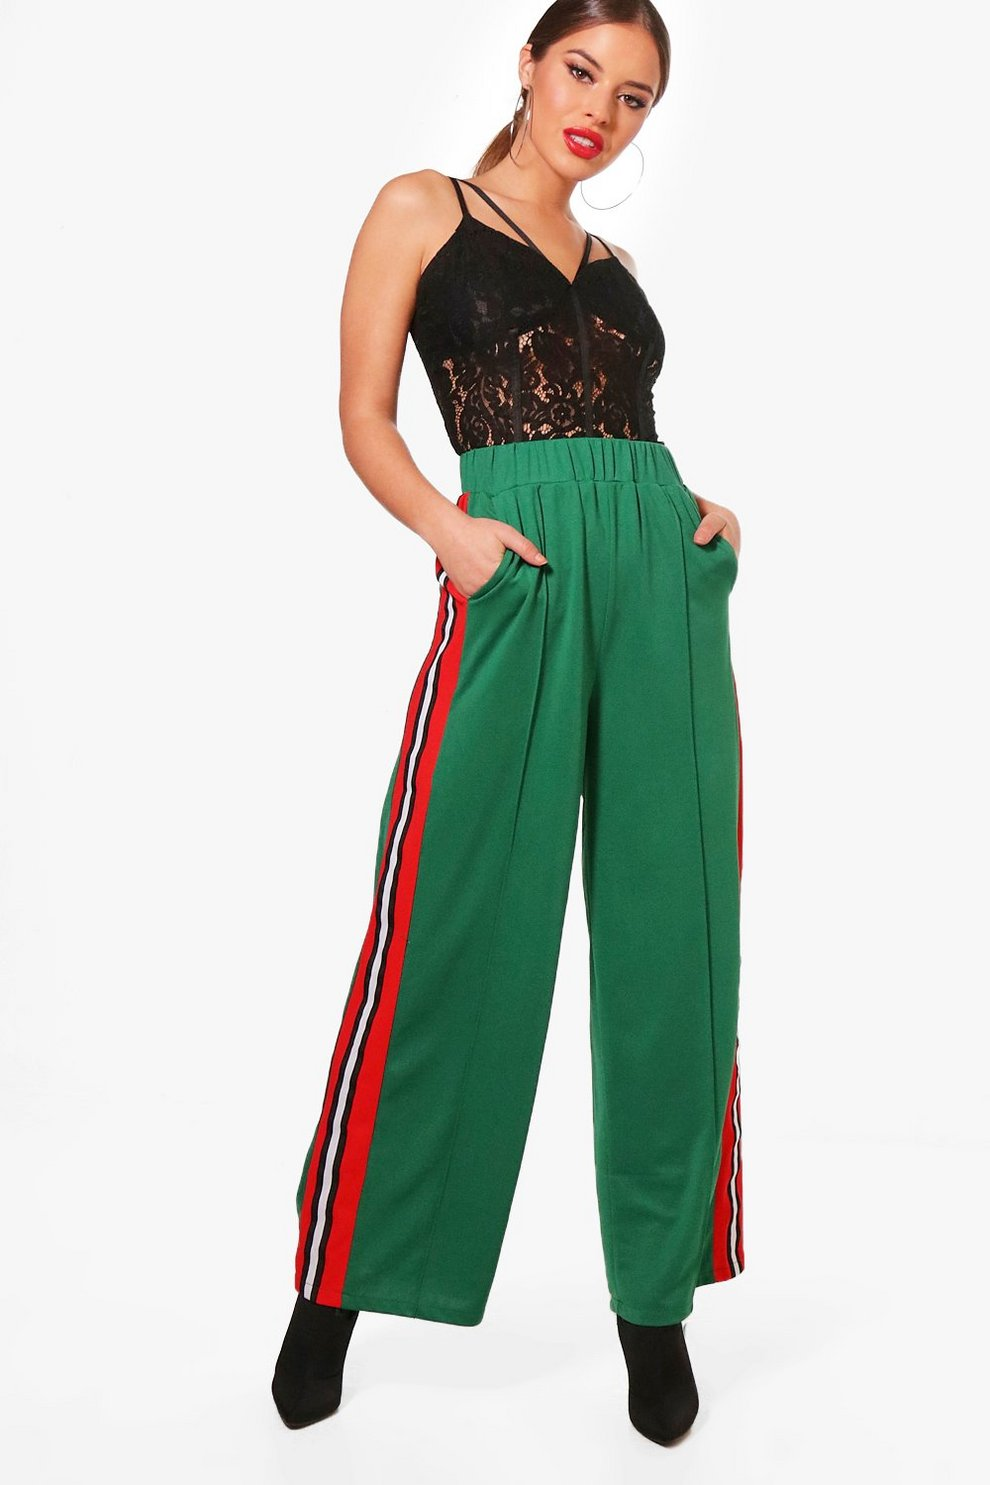 Boohoo Petite Woven Slouchy Track Pant Best Place For Sale Free Shipping Top Quality Footlocker Pictures Cheap Online 0qMqw4oC